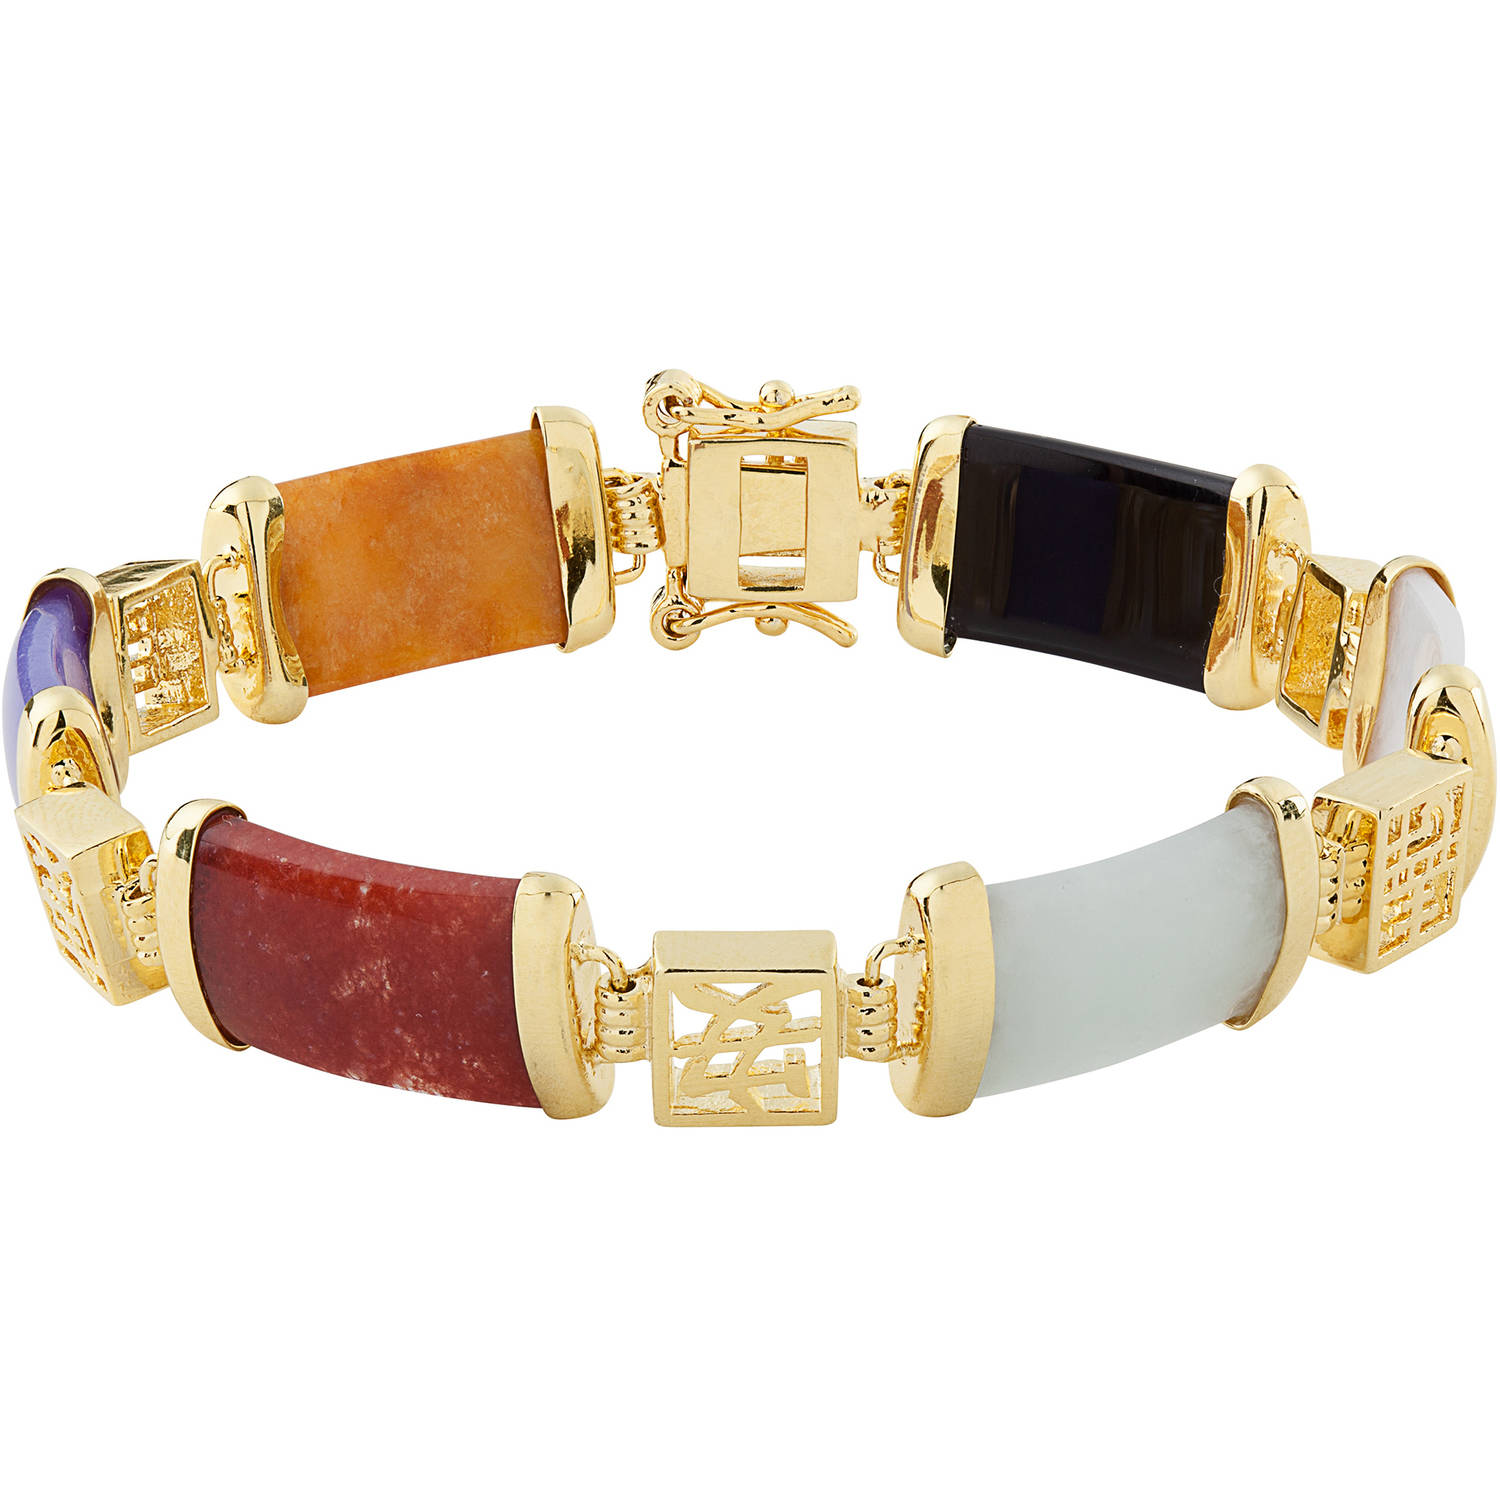 "Jade 14kt Gold-Plated Good Fortune Bracelet, 7"", with Jade Stud Earrings"